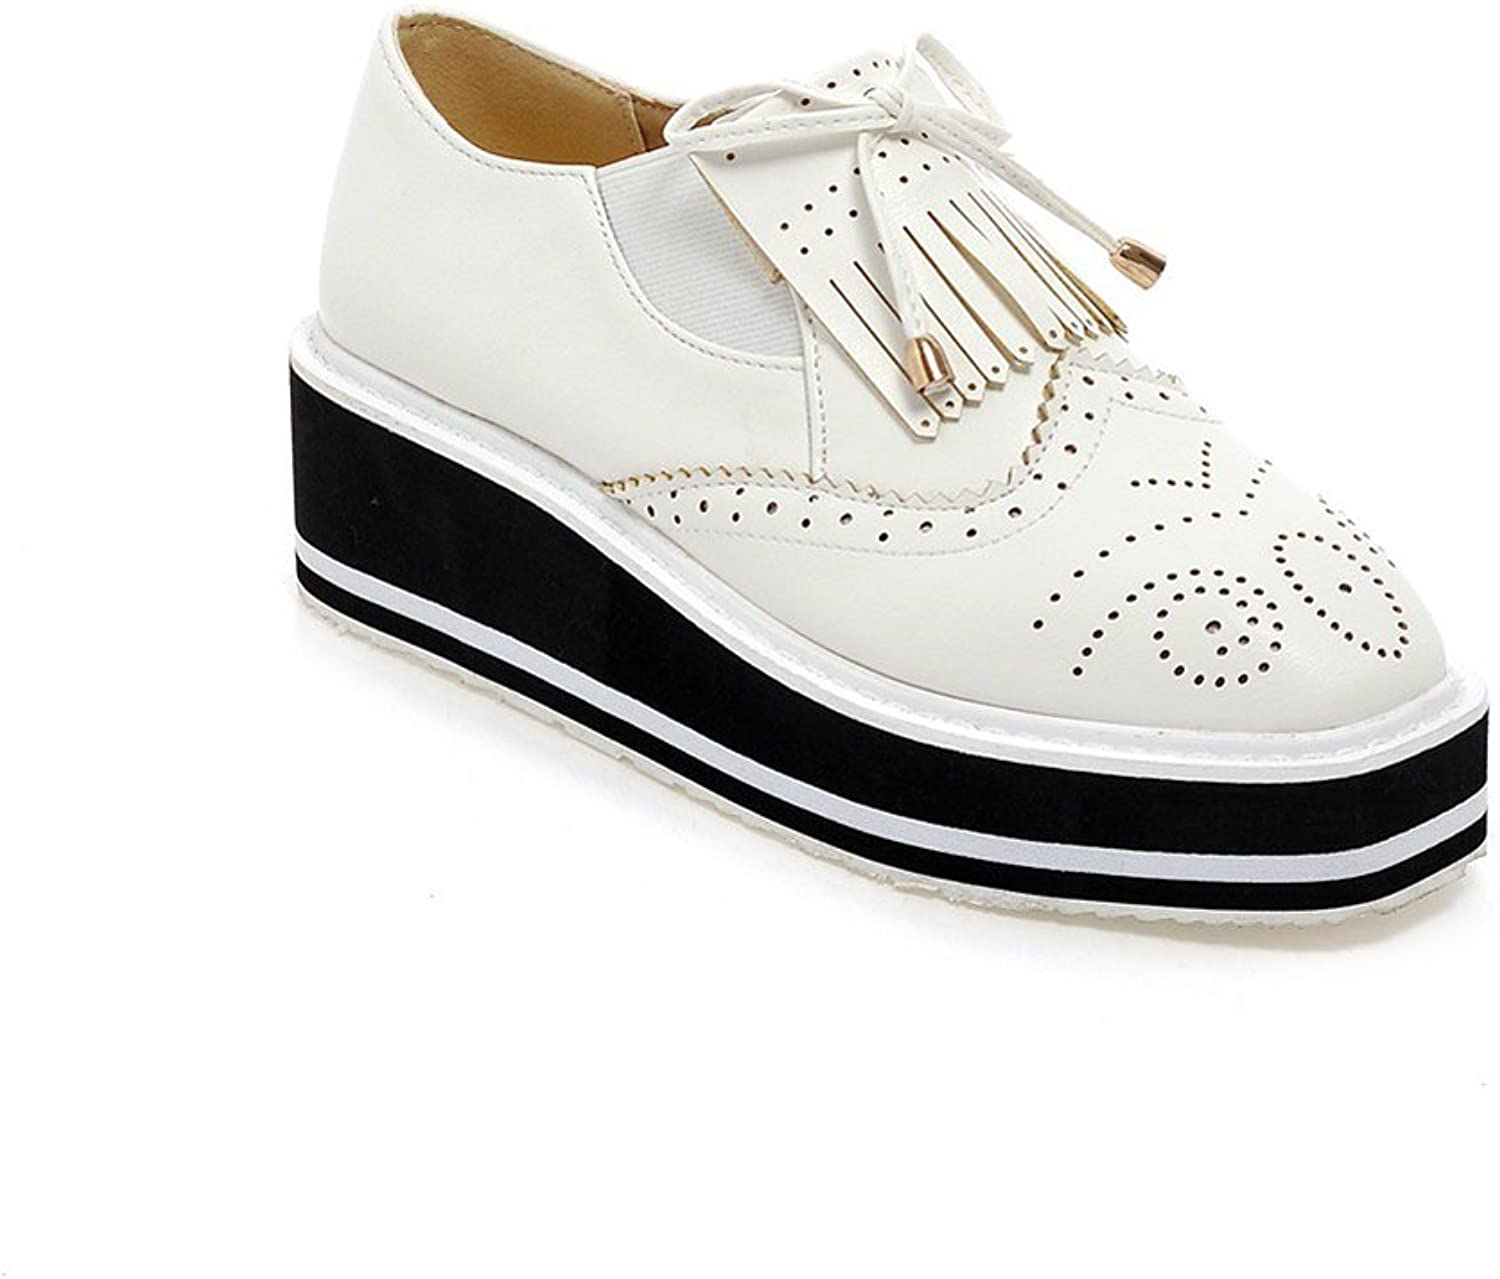 Lucksender Womens Fashion Platform Wedge Heel Oxfords shoes with Tassels and Bowknot